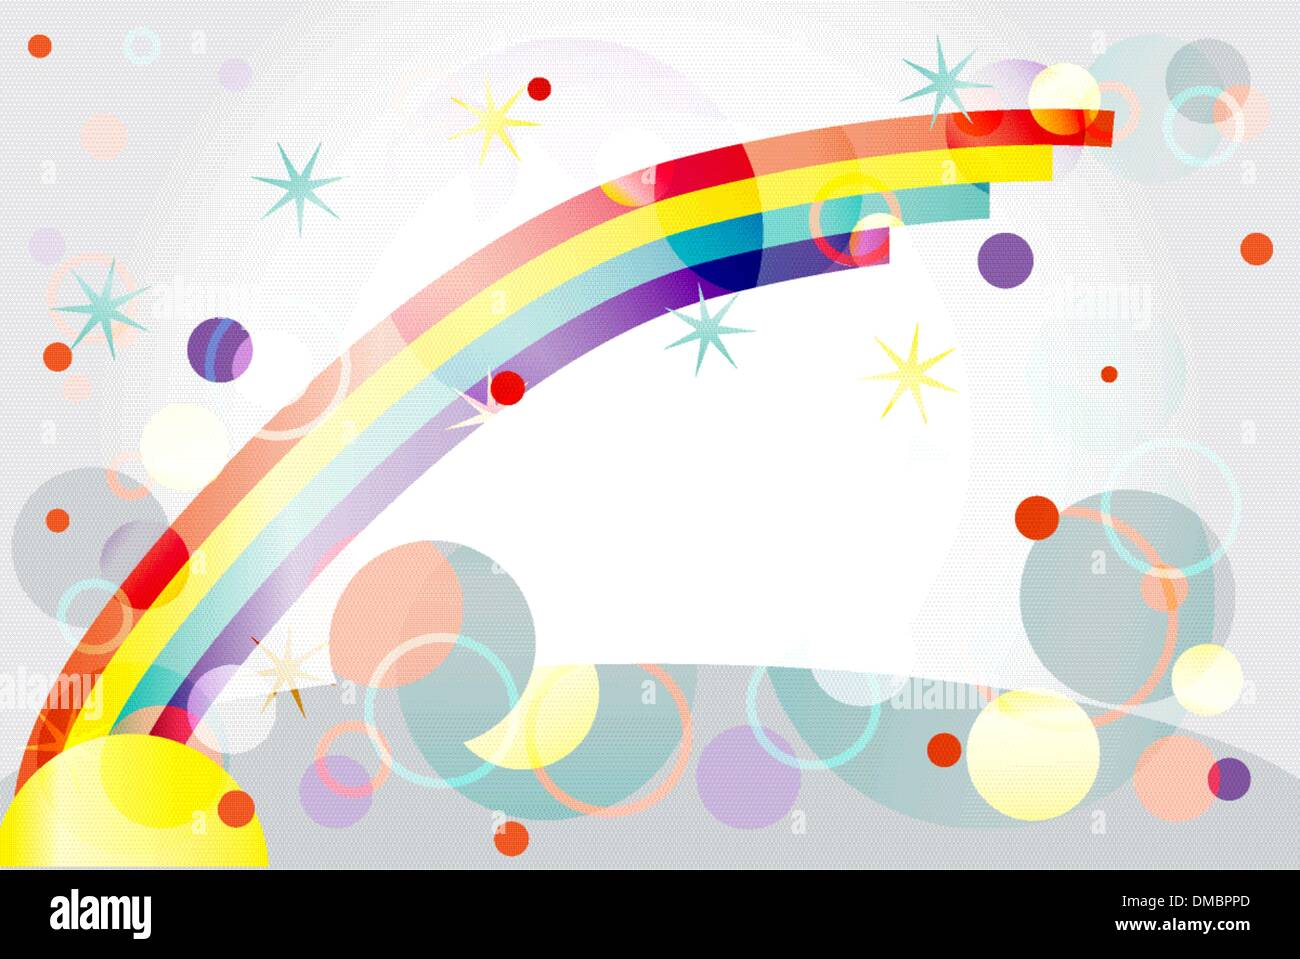 Multi-colored abstract background - Stock Image